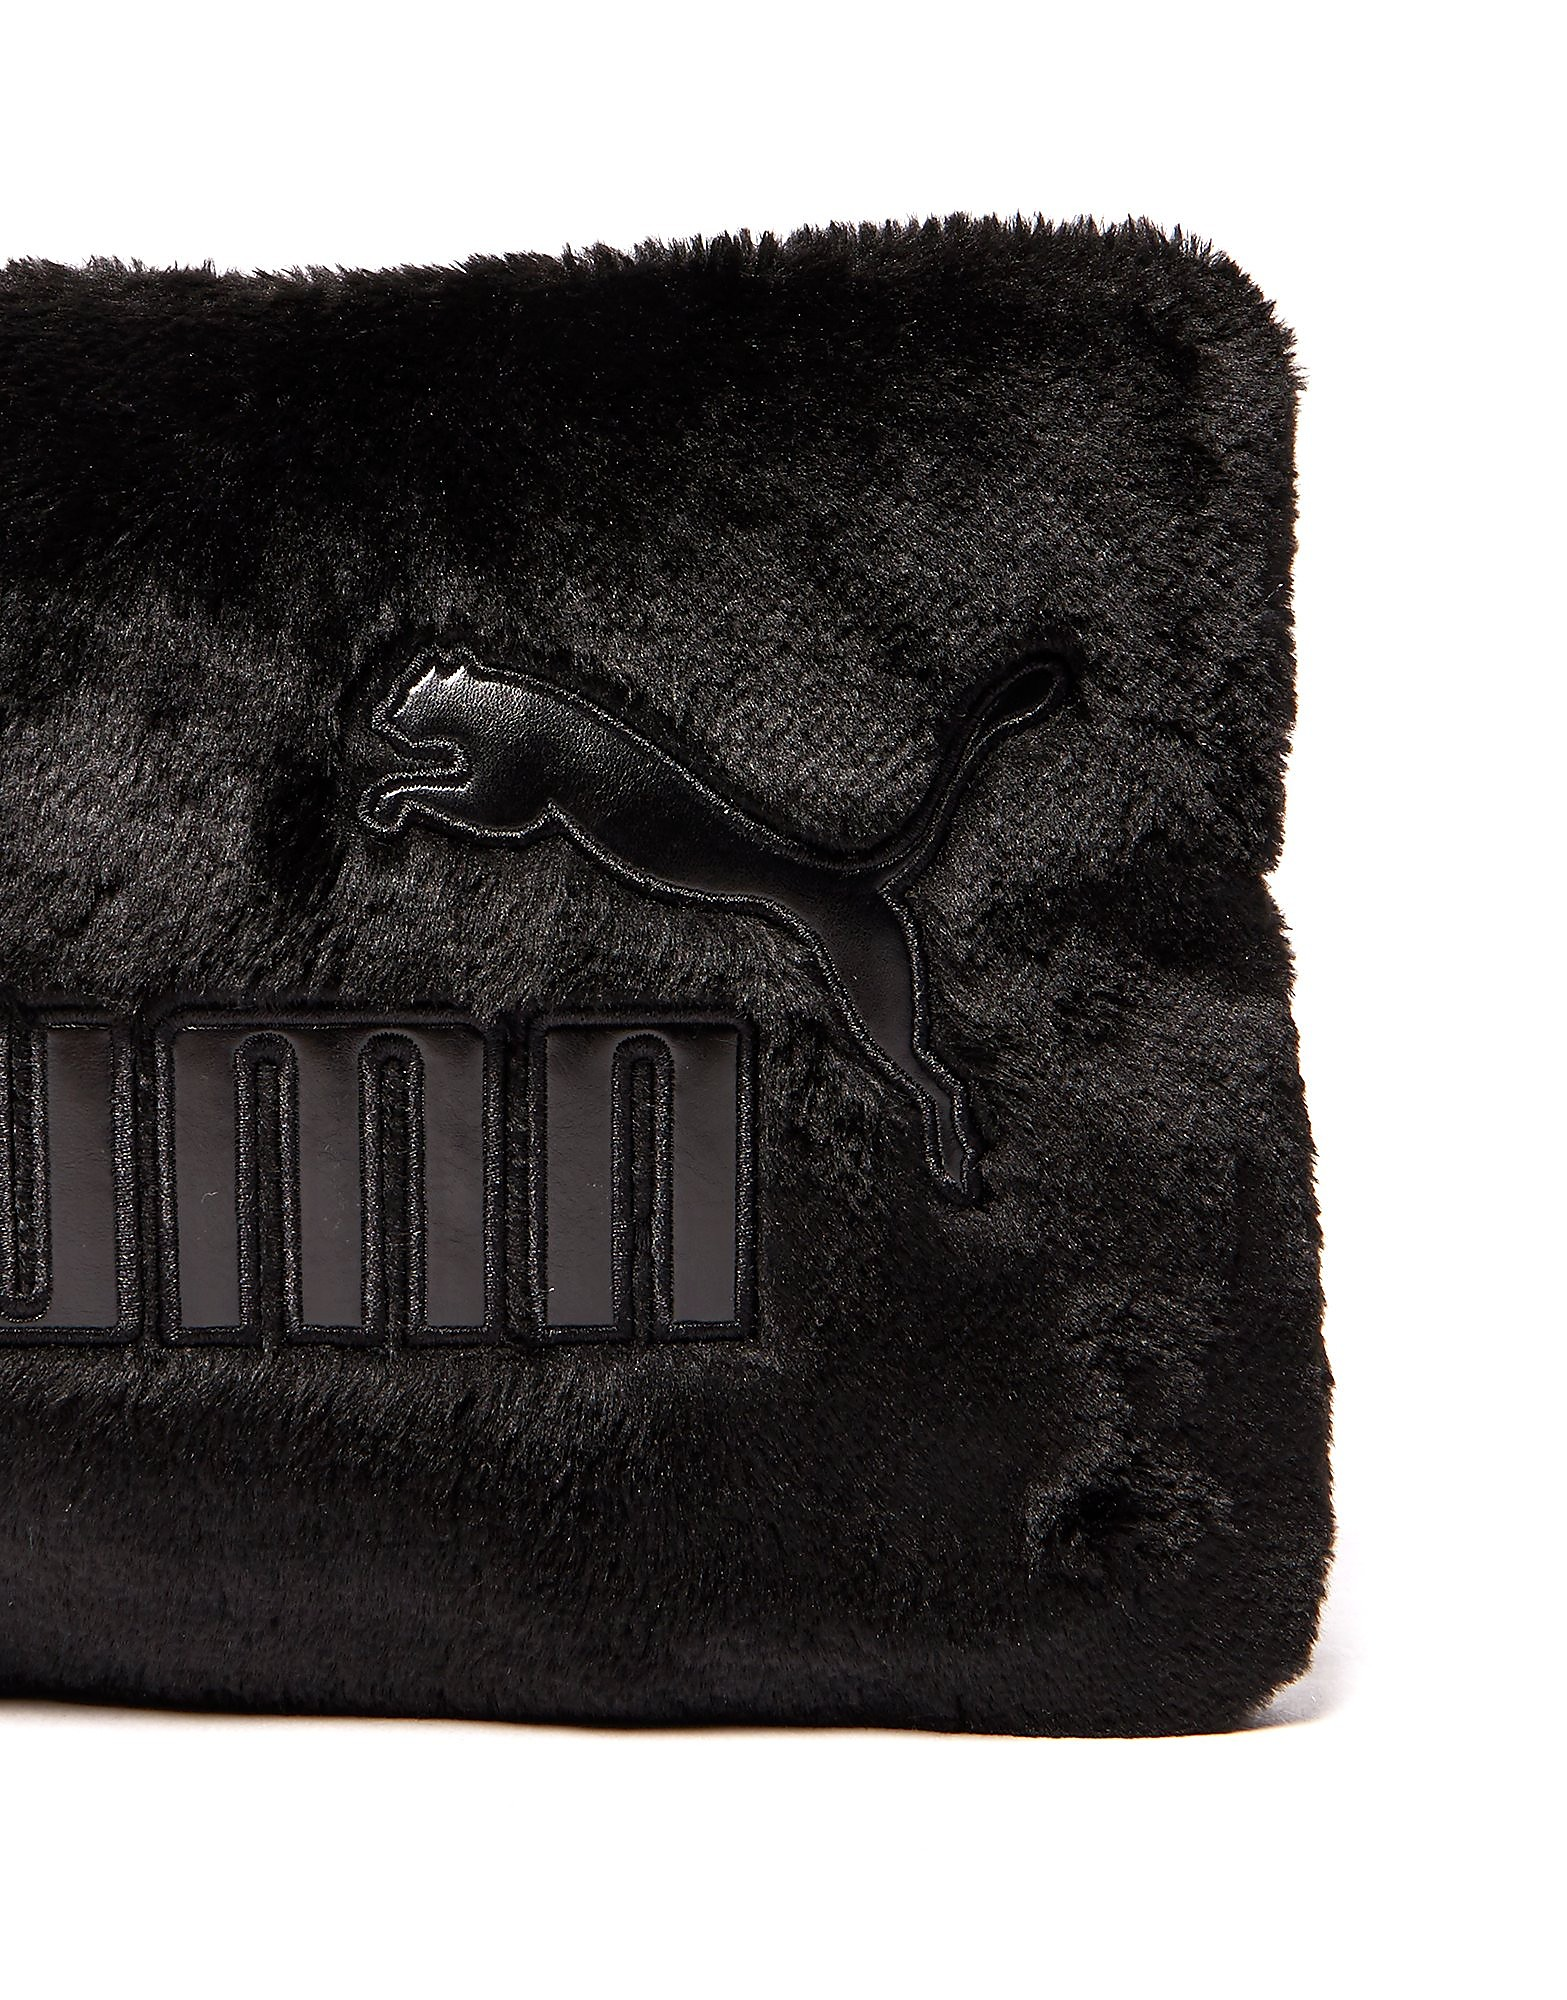 PUMA Faux Fur Clutch